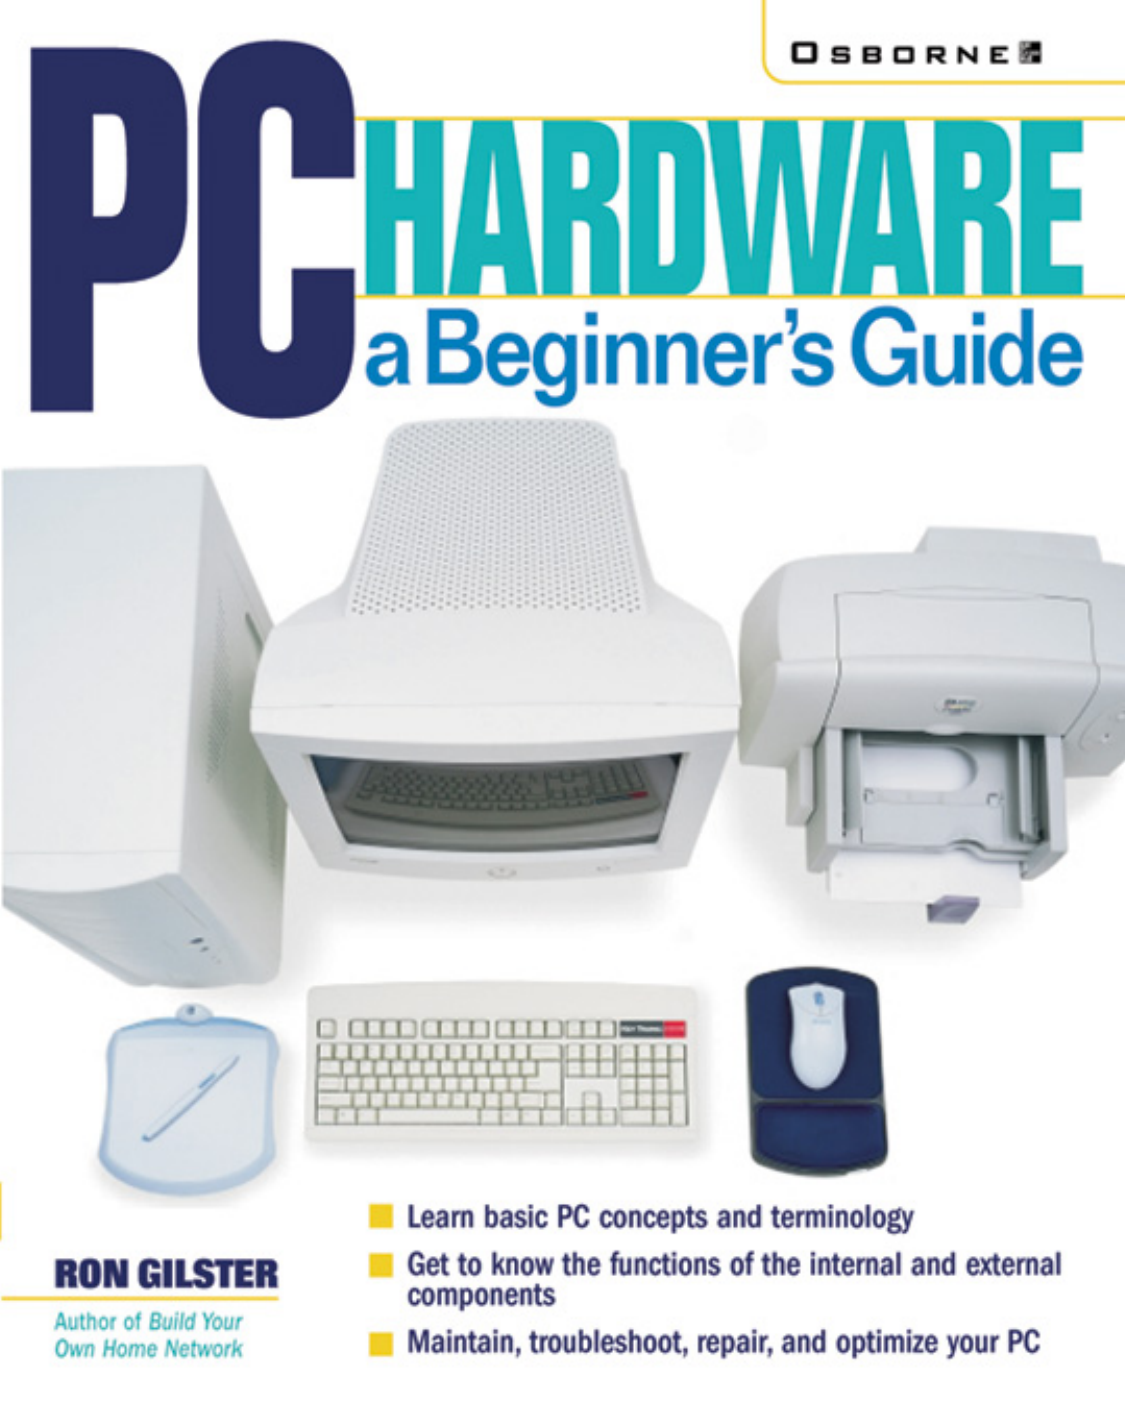 Pc Hardware A Beginners Guide Diy Circuit Boards Using Photo Etch Process7 Construction